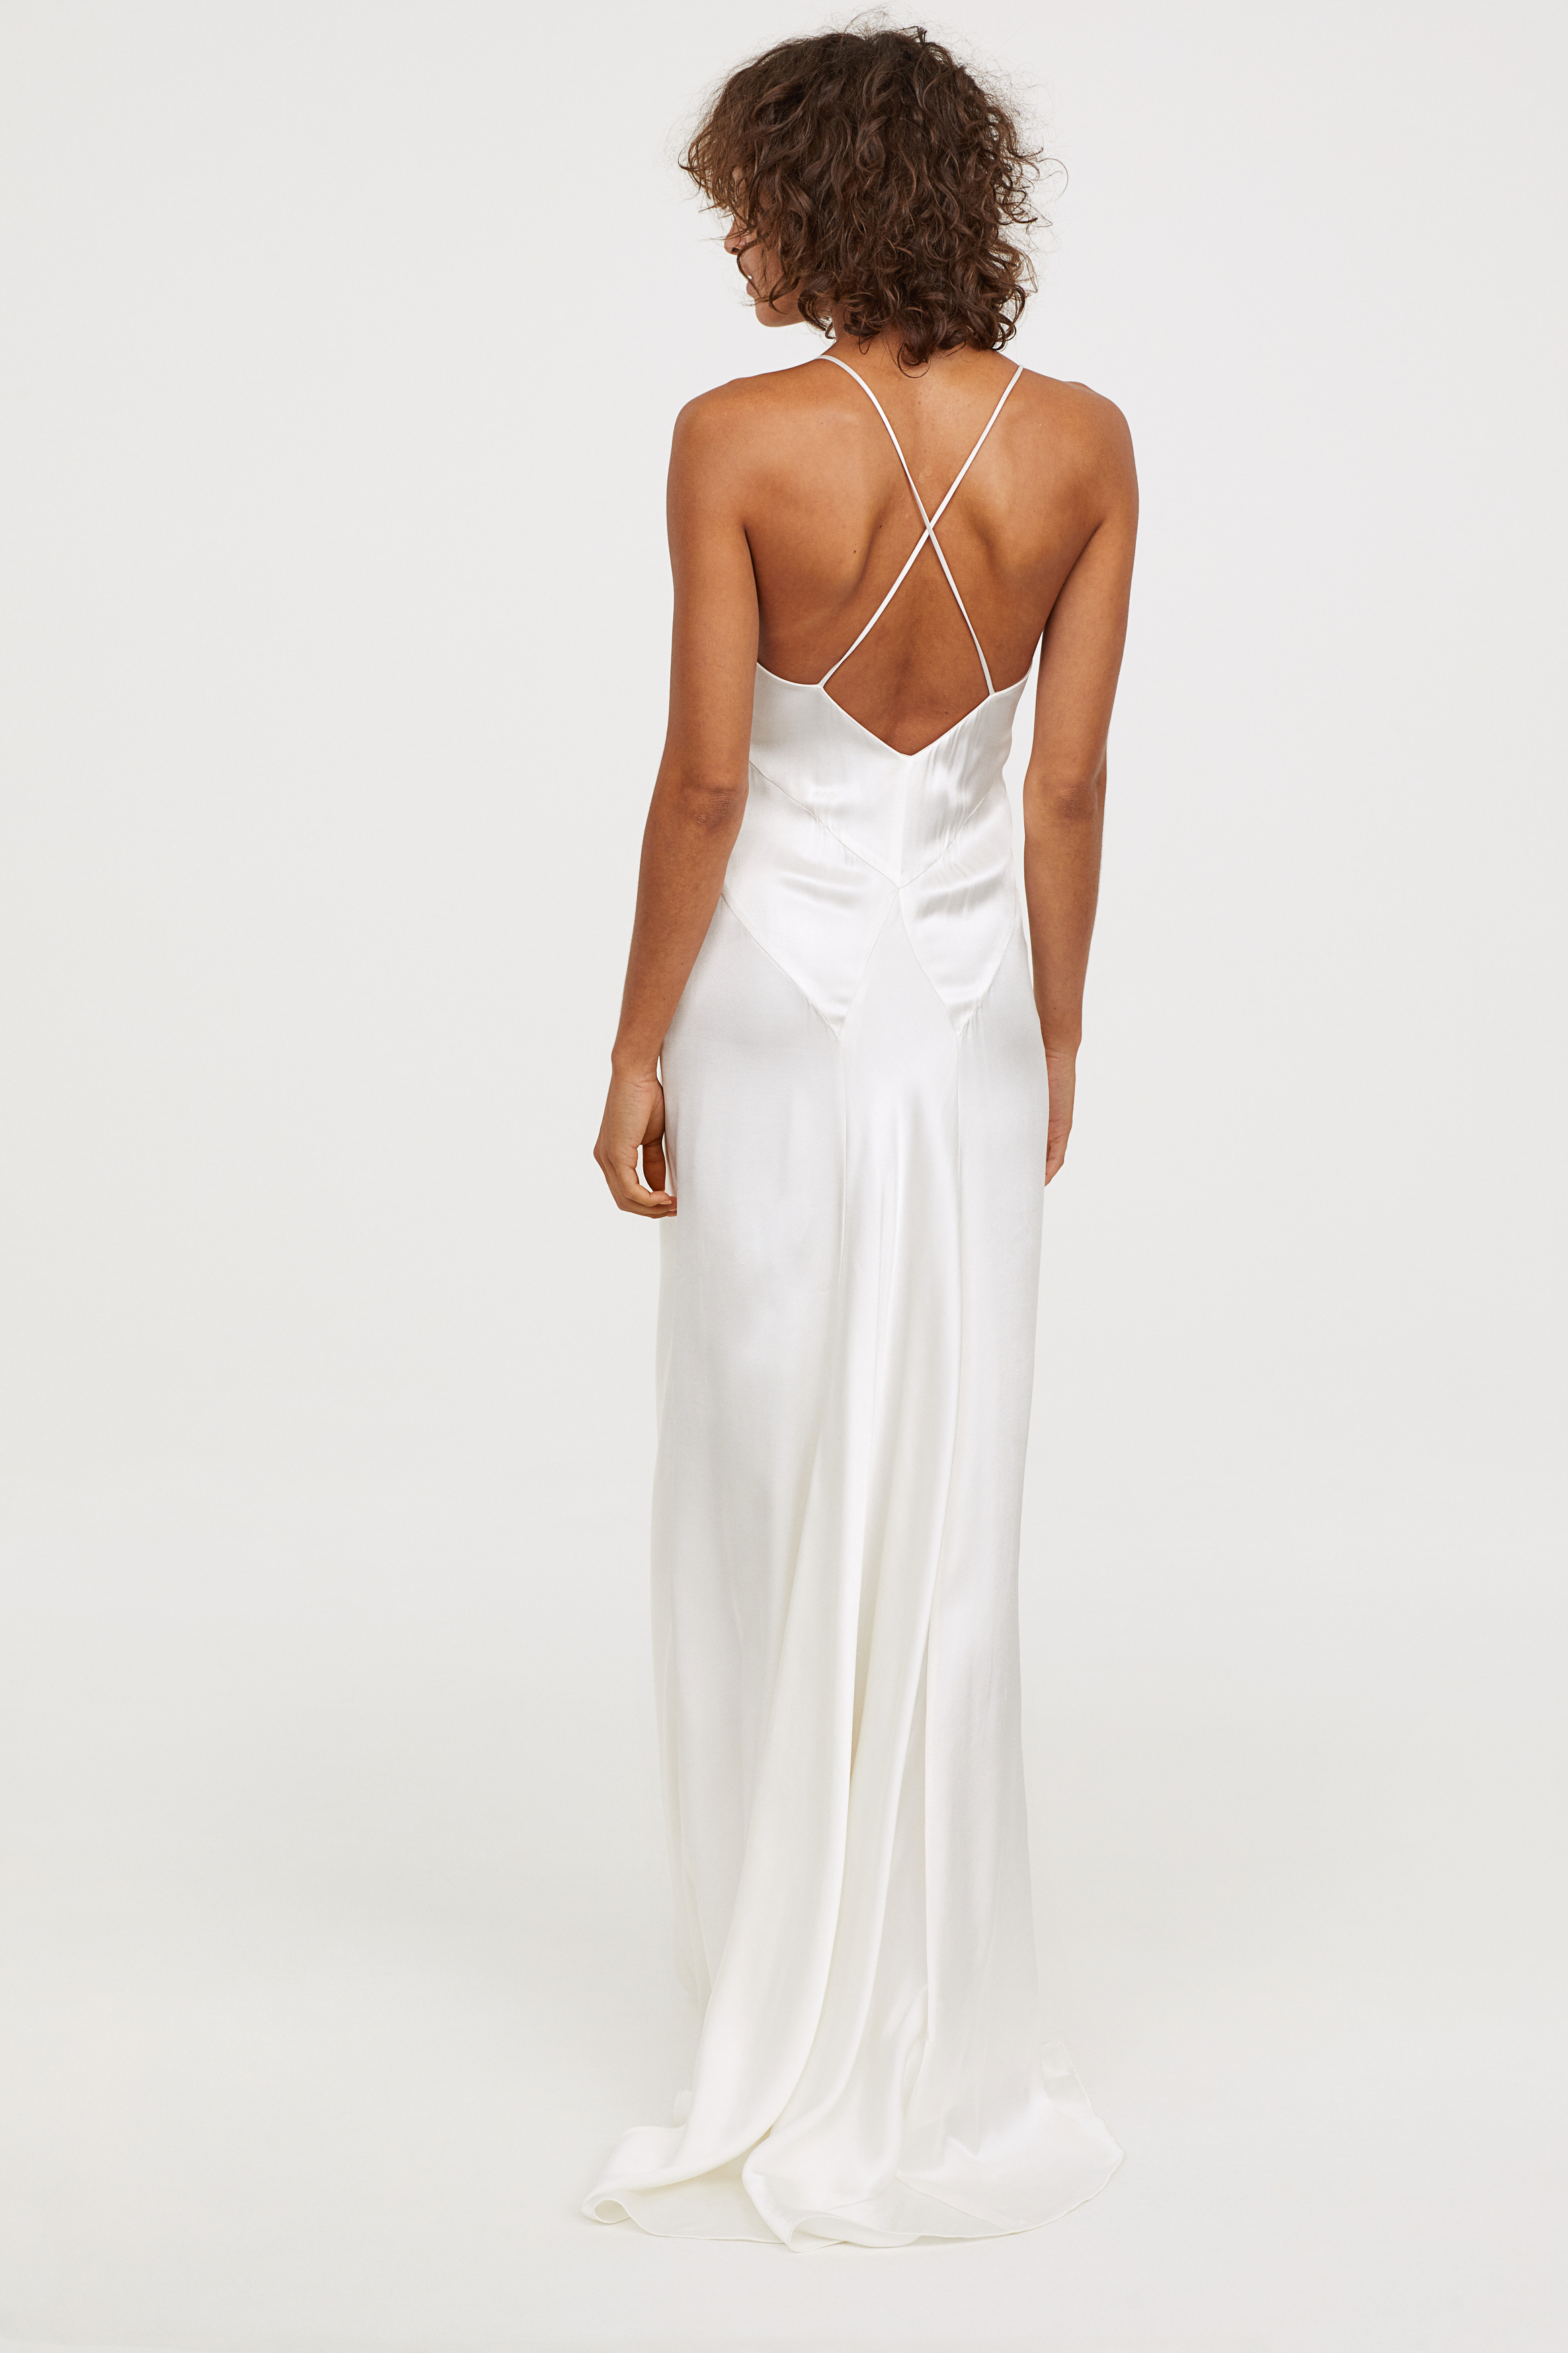 Hm Wedding Dress.H M Adds Royal Inspired Pieces To Its Bridal Shop And Everything Is